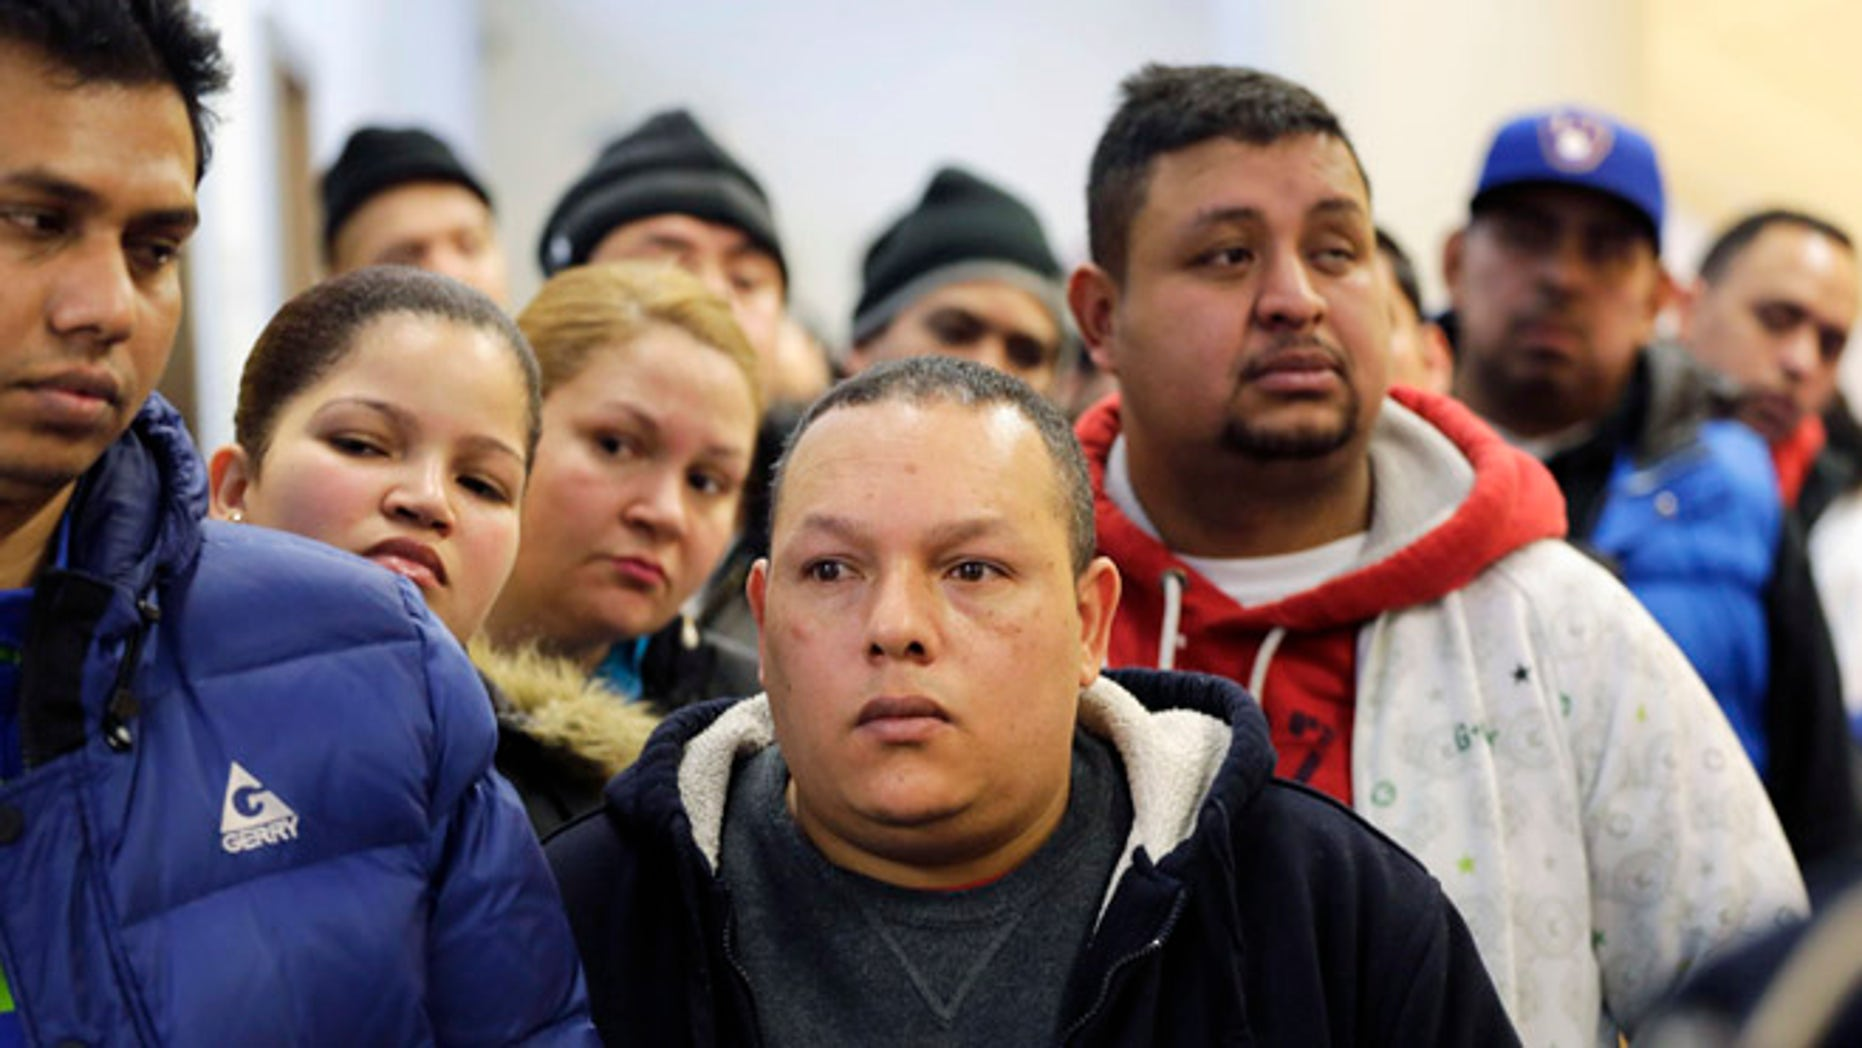 People wait in line to apply for municipal identification cards in the Bronx borough of New York on Jan. 12, 2015.